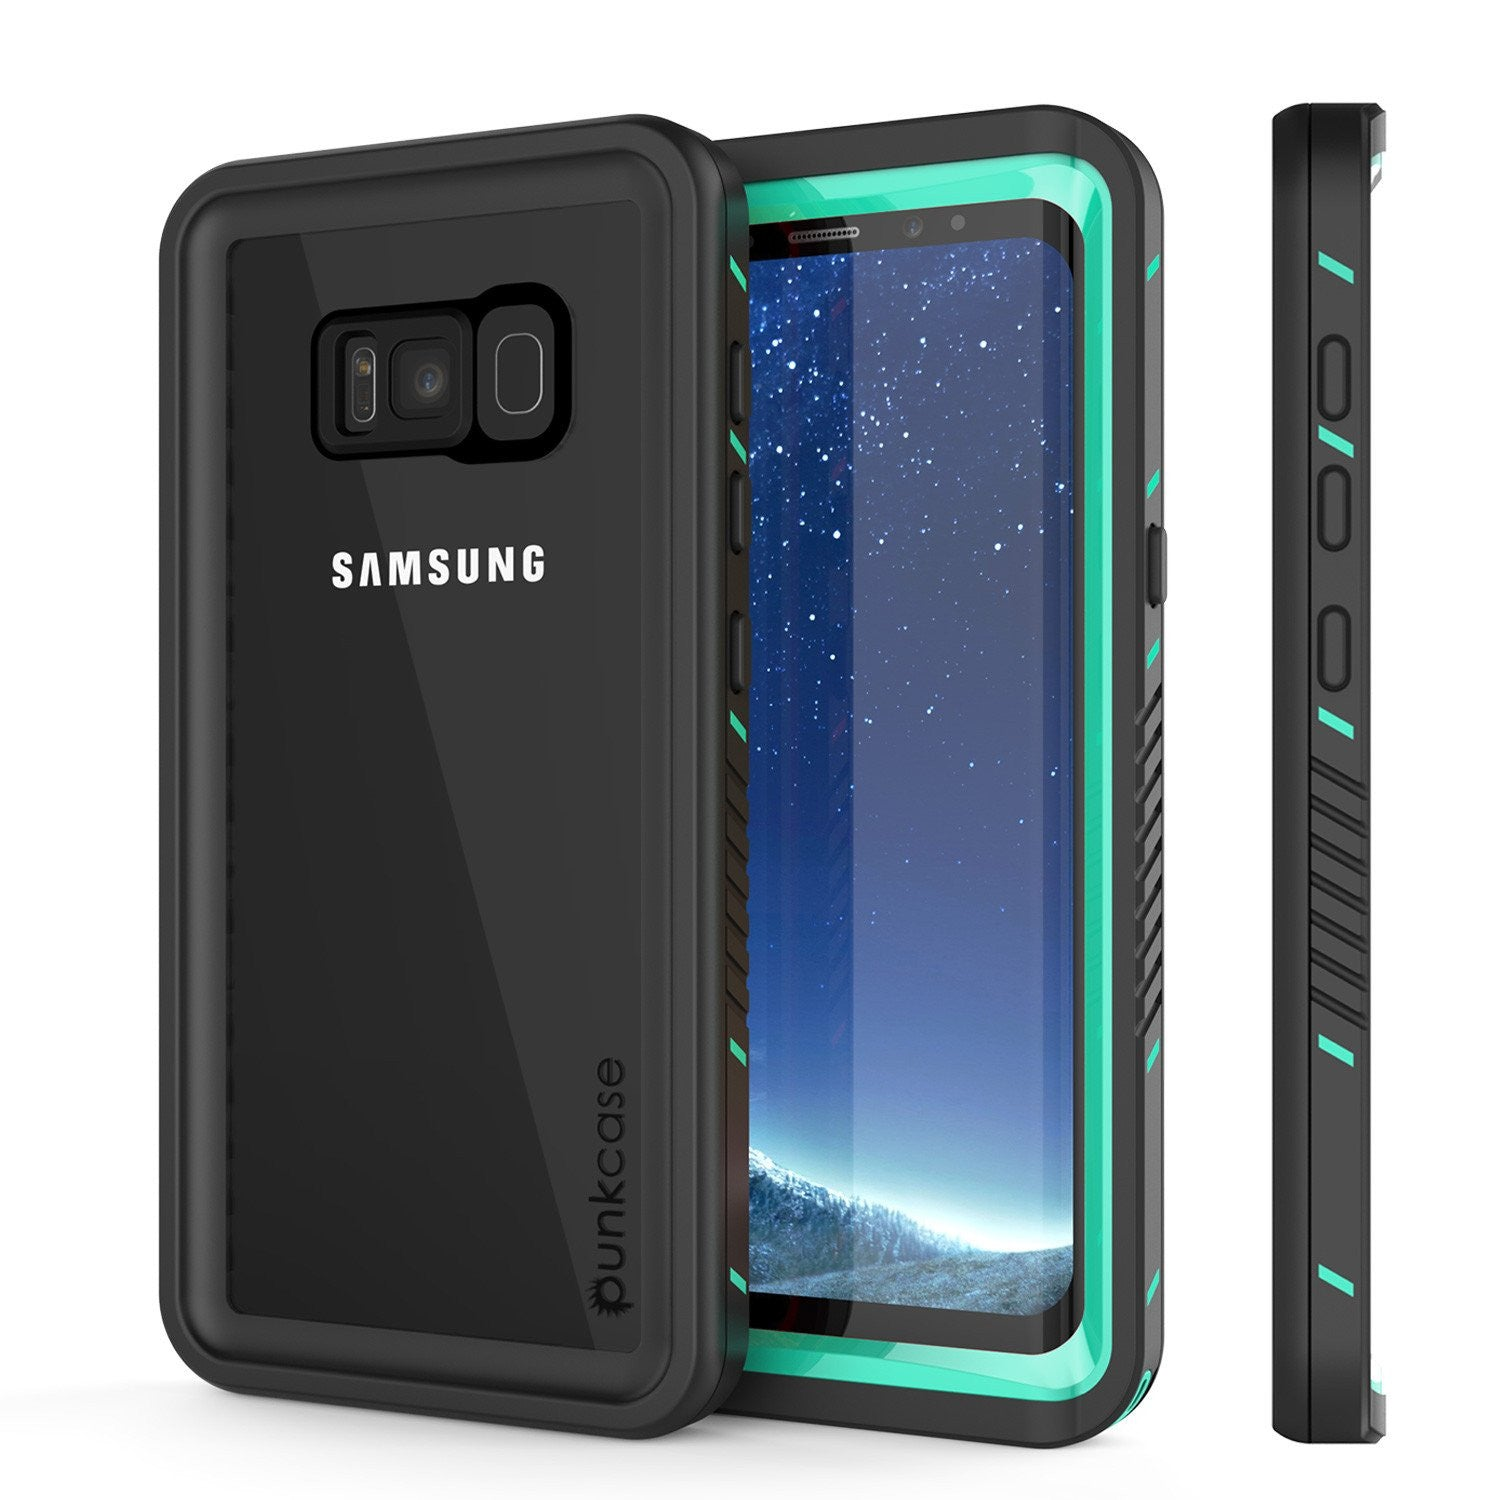 Galaxy S8 Waterproof Case, Punkcase [Extreme Series] [Slim Fit] [IP68 Certified] [Shockproof] [Snowproof] [Dirproof] Armor Cover W/ Built In Screen Protector for Samsung Galaxy S8 [Teal]